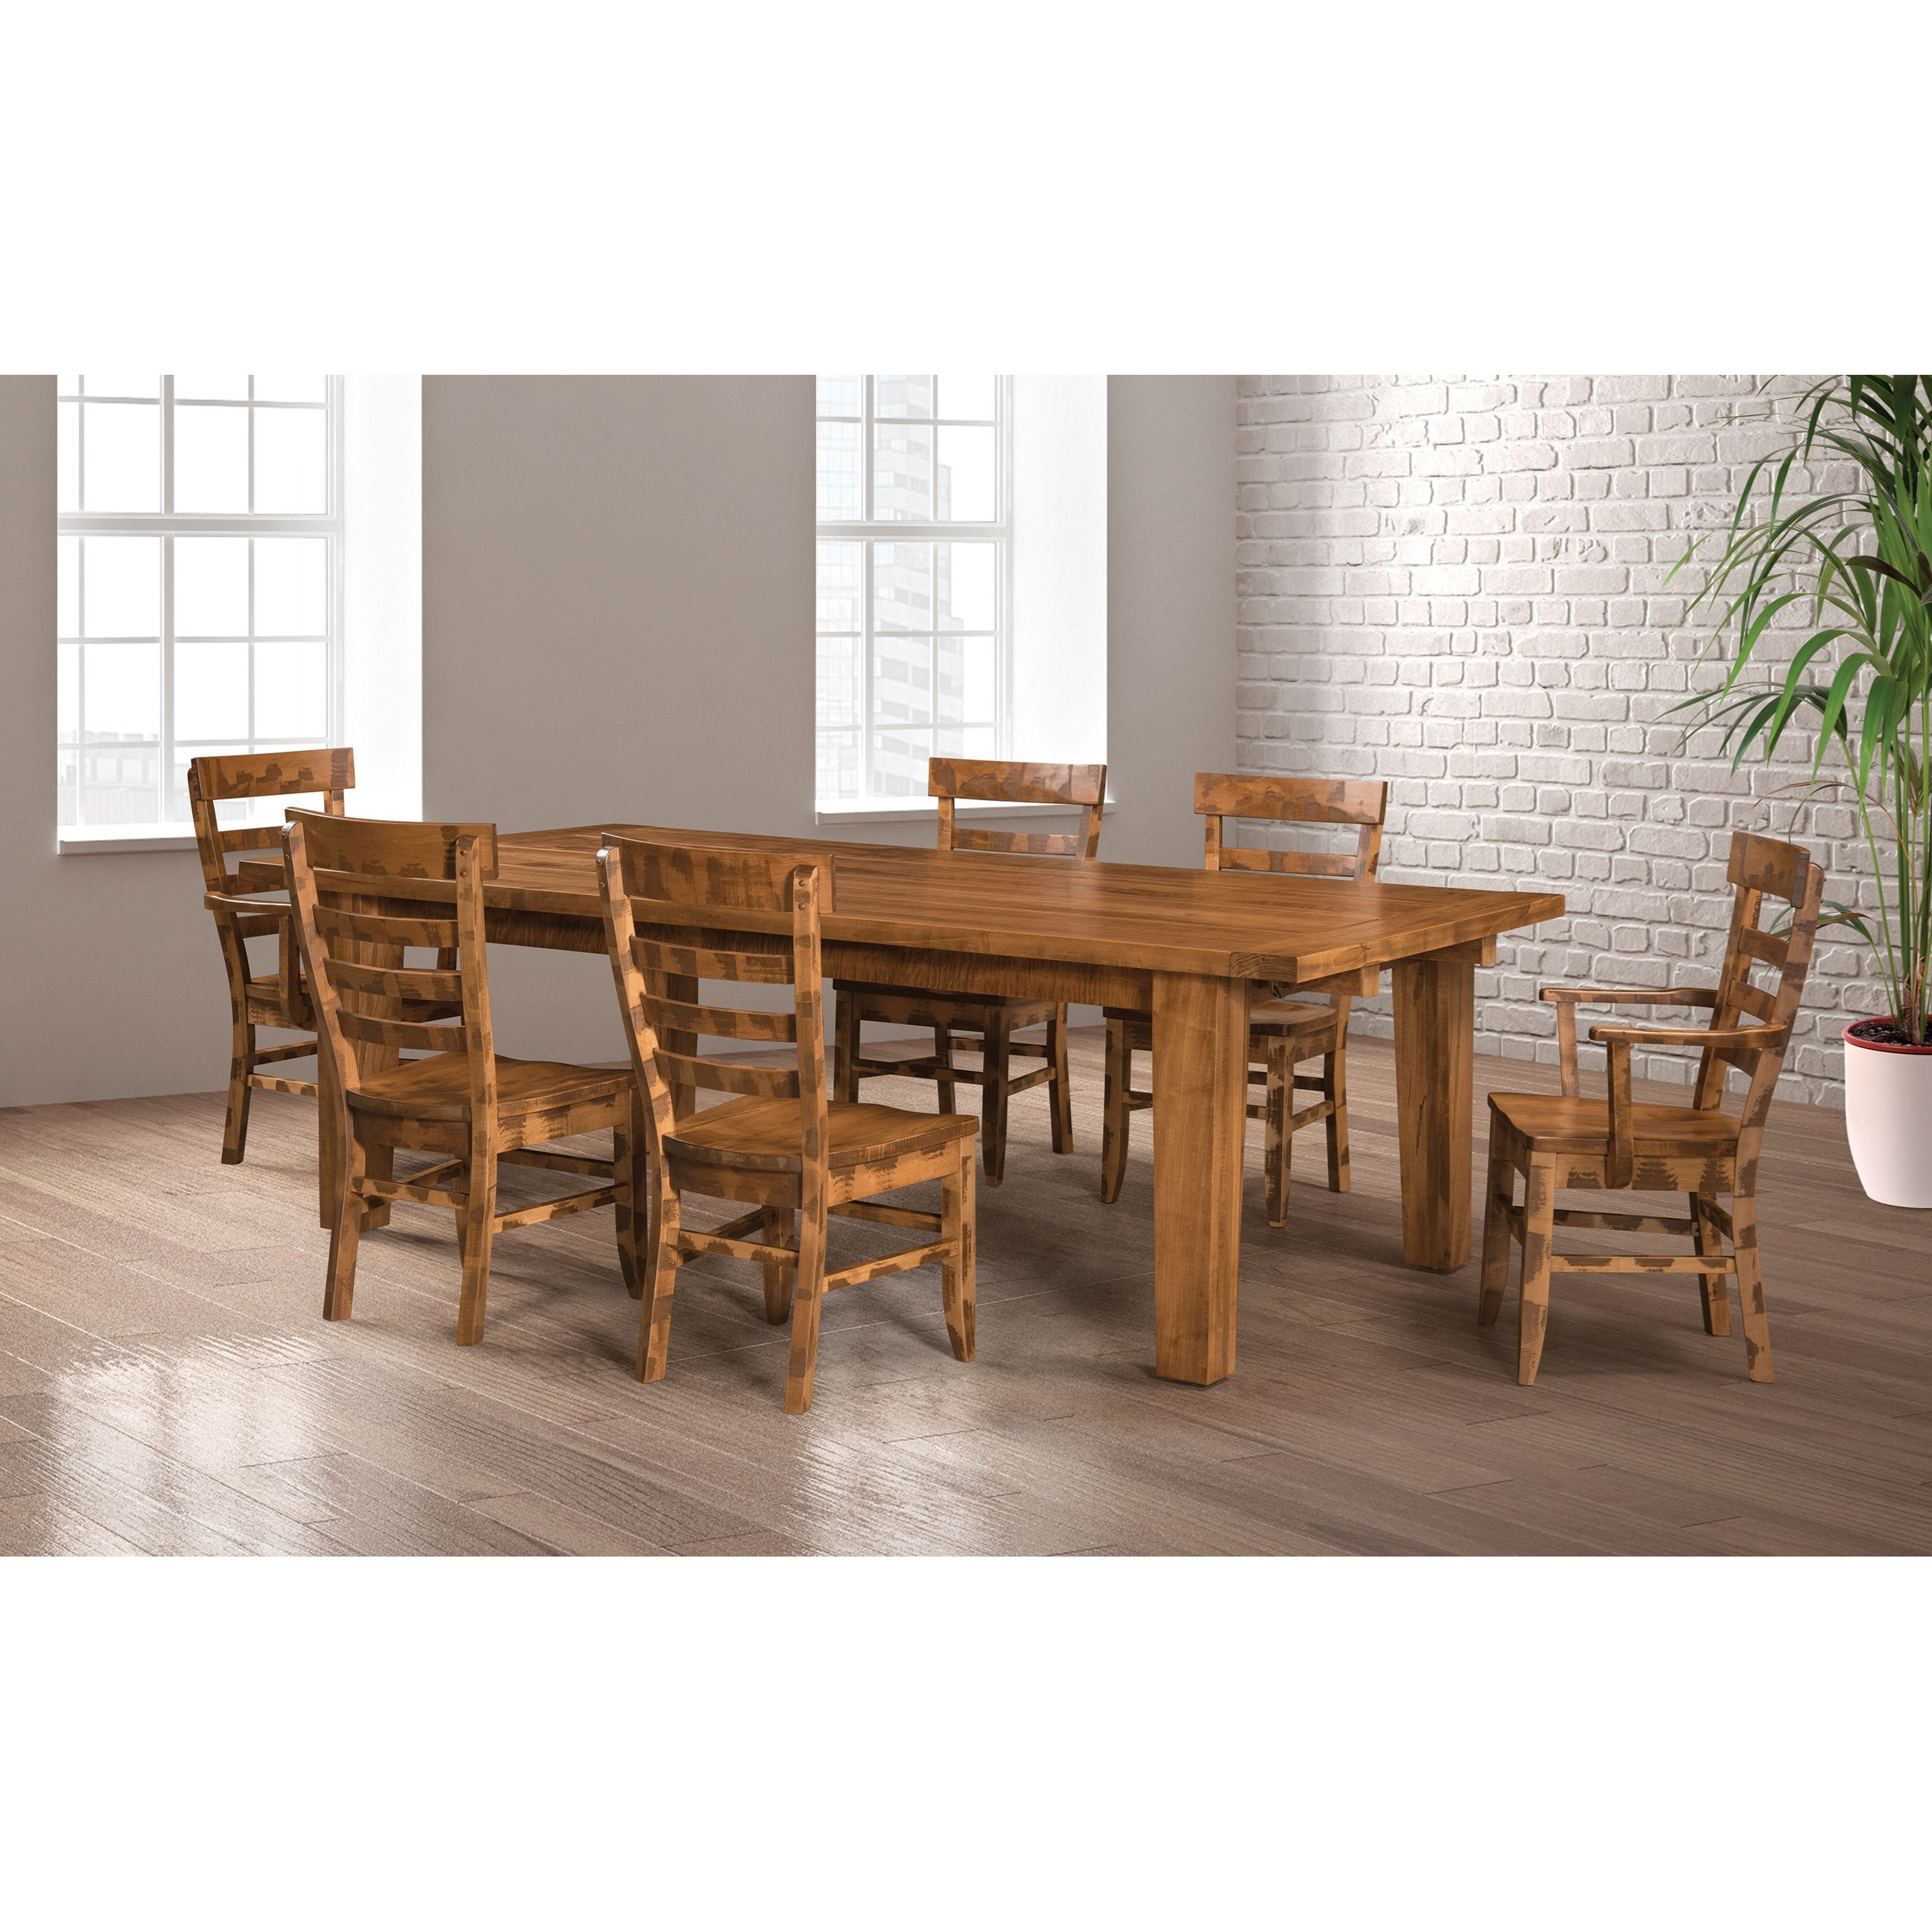 Frontier Customizable Table & Chair Set by Weaver Woodcraft at Saugerties Furniture Mart